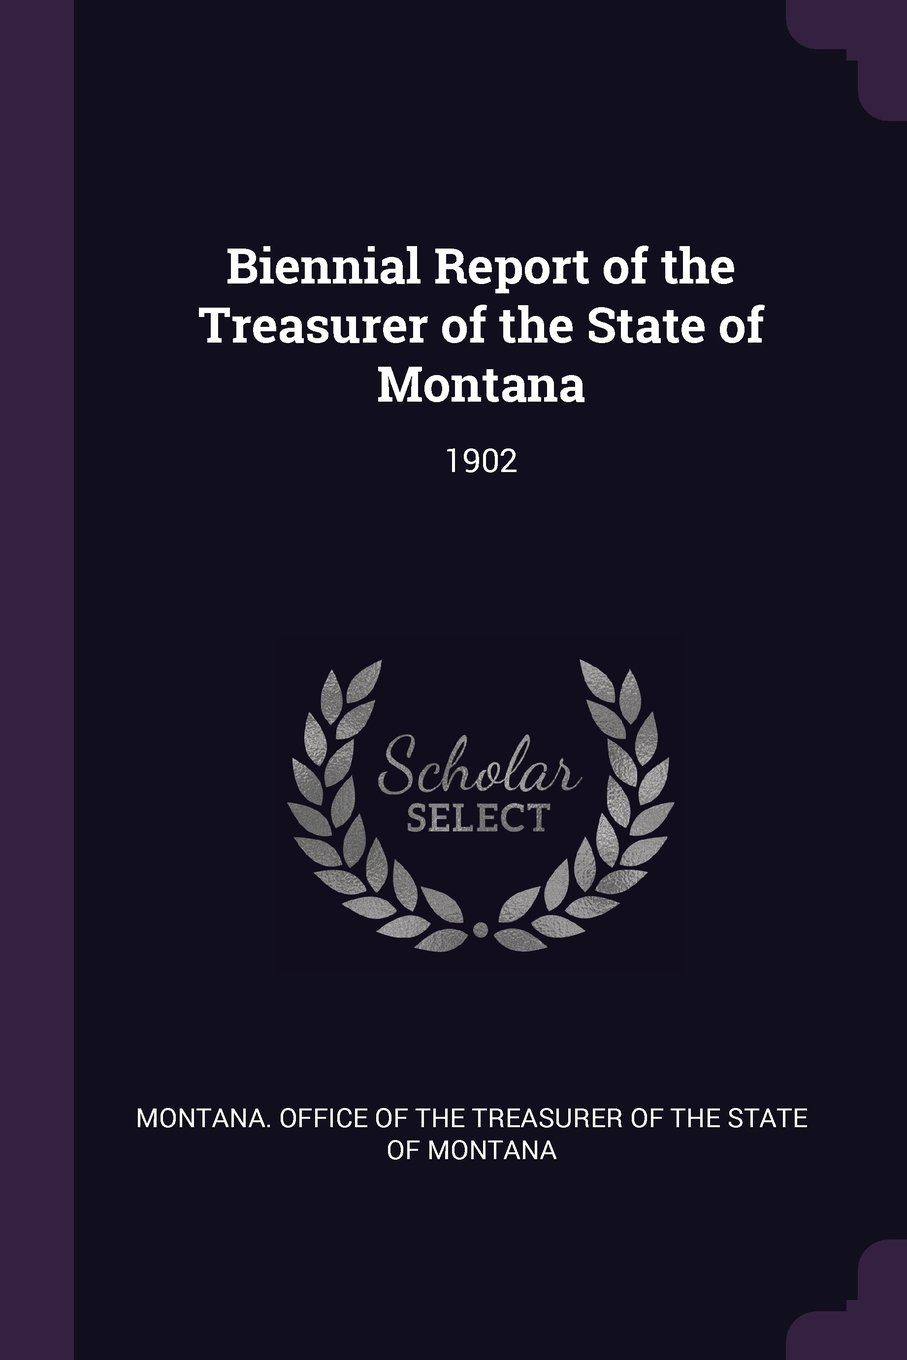 Biennial Report of the Treasurer of the State of Montana: 1902